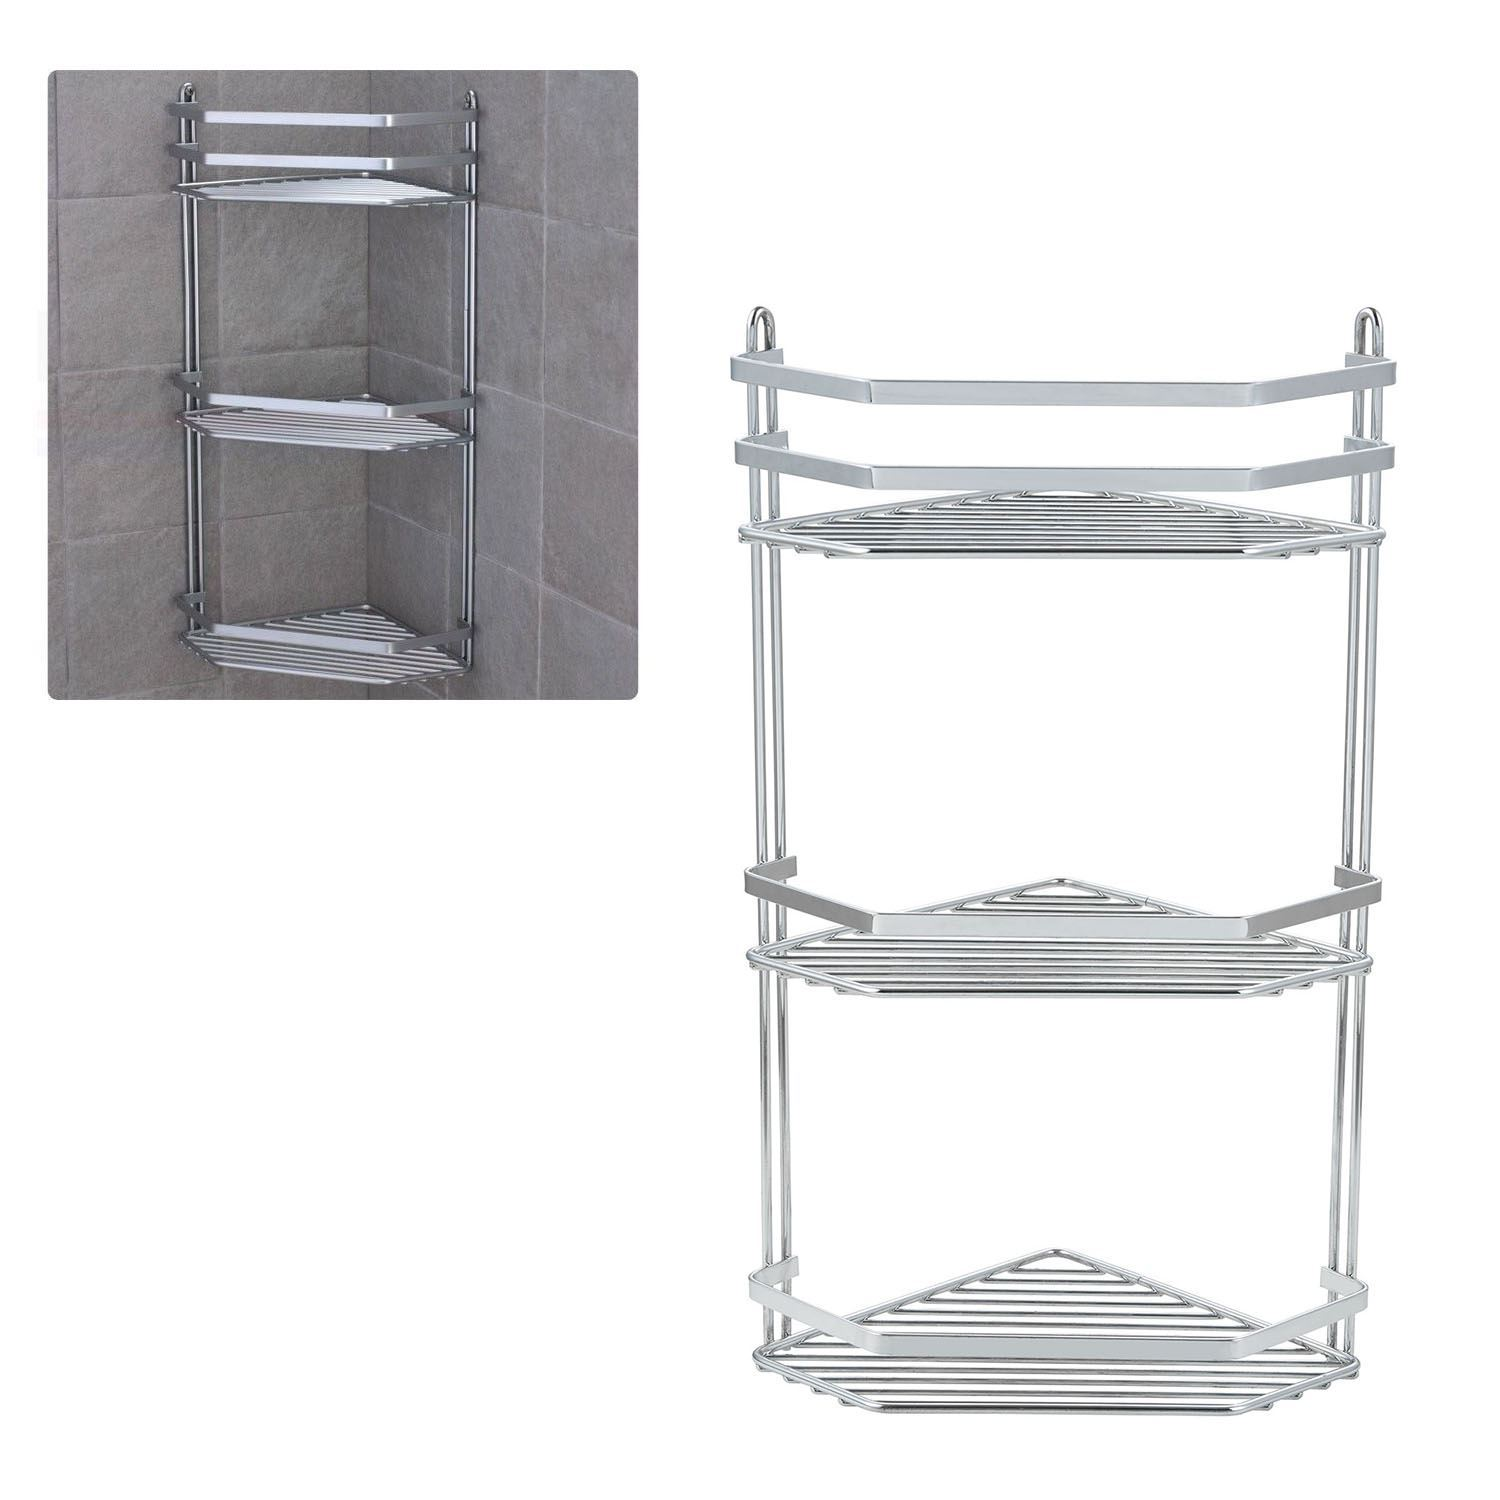 3 TIER CHROME CORNER SHOWER CADDY BATHROOM STORAGE RACK SHELF ...